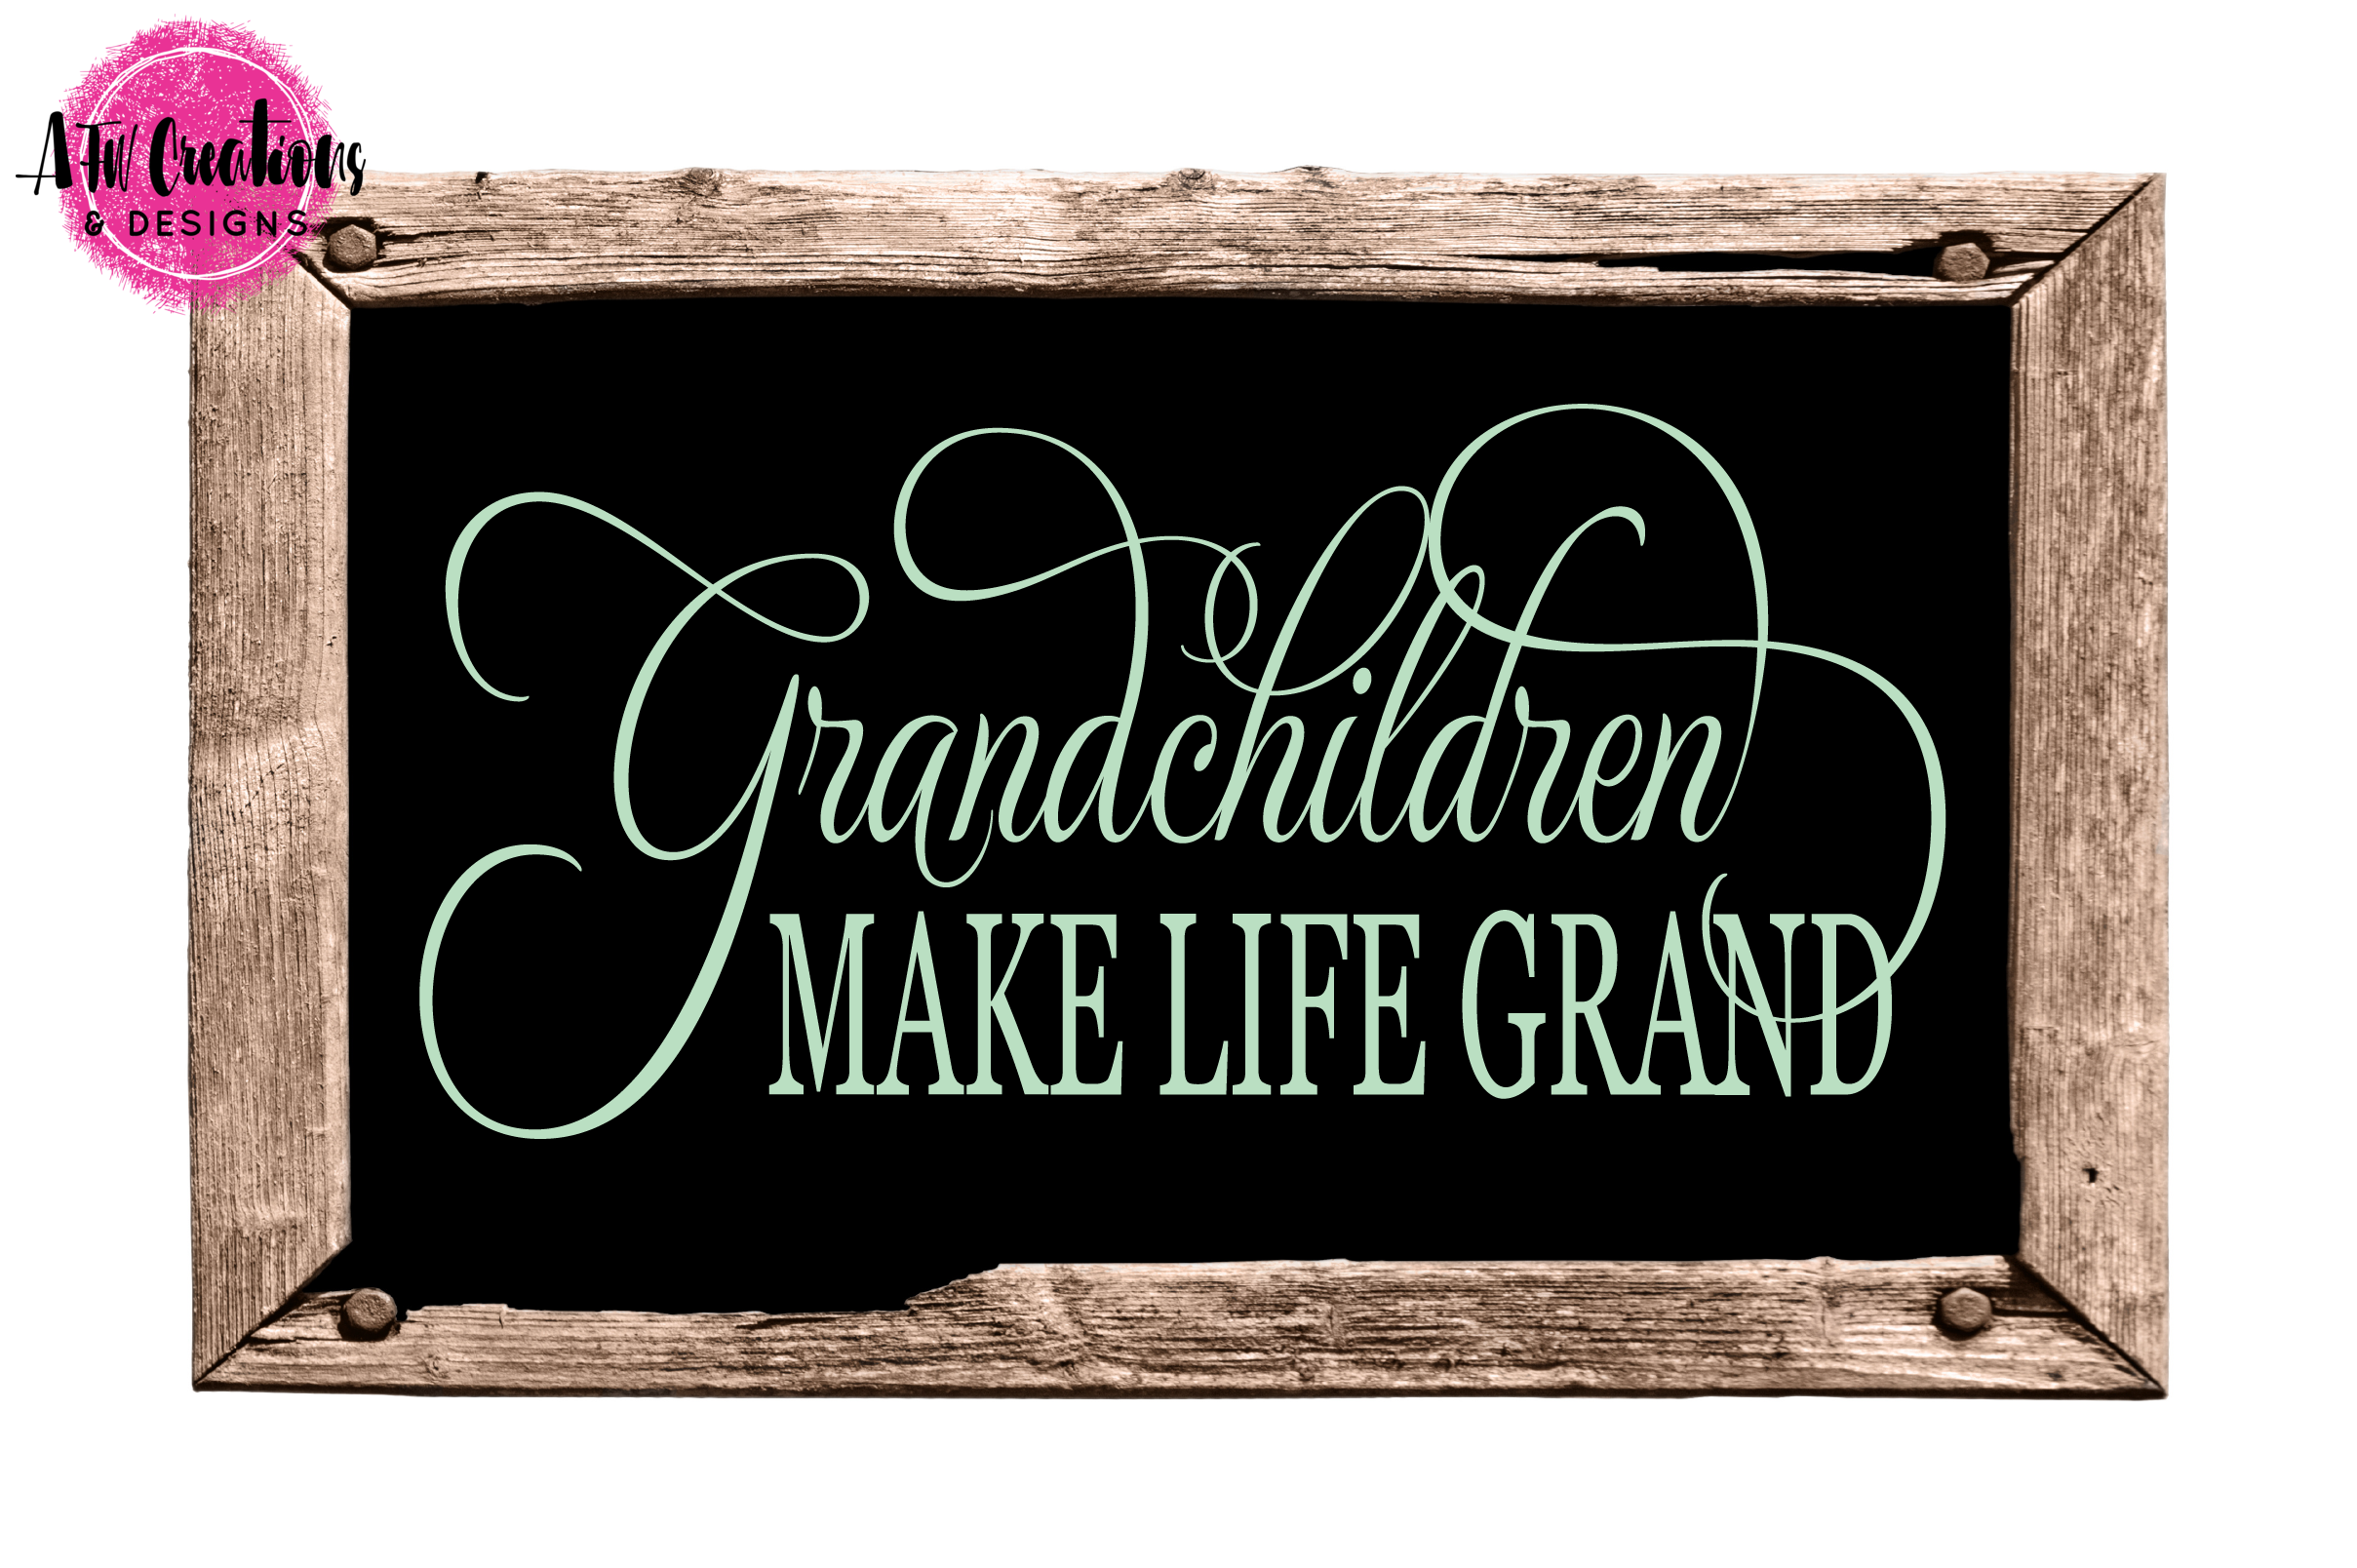 Grandchildren Make Life Grand - SVG, DXF, EPS Cut File example image 2